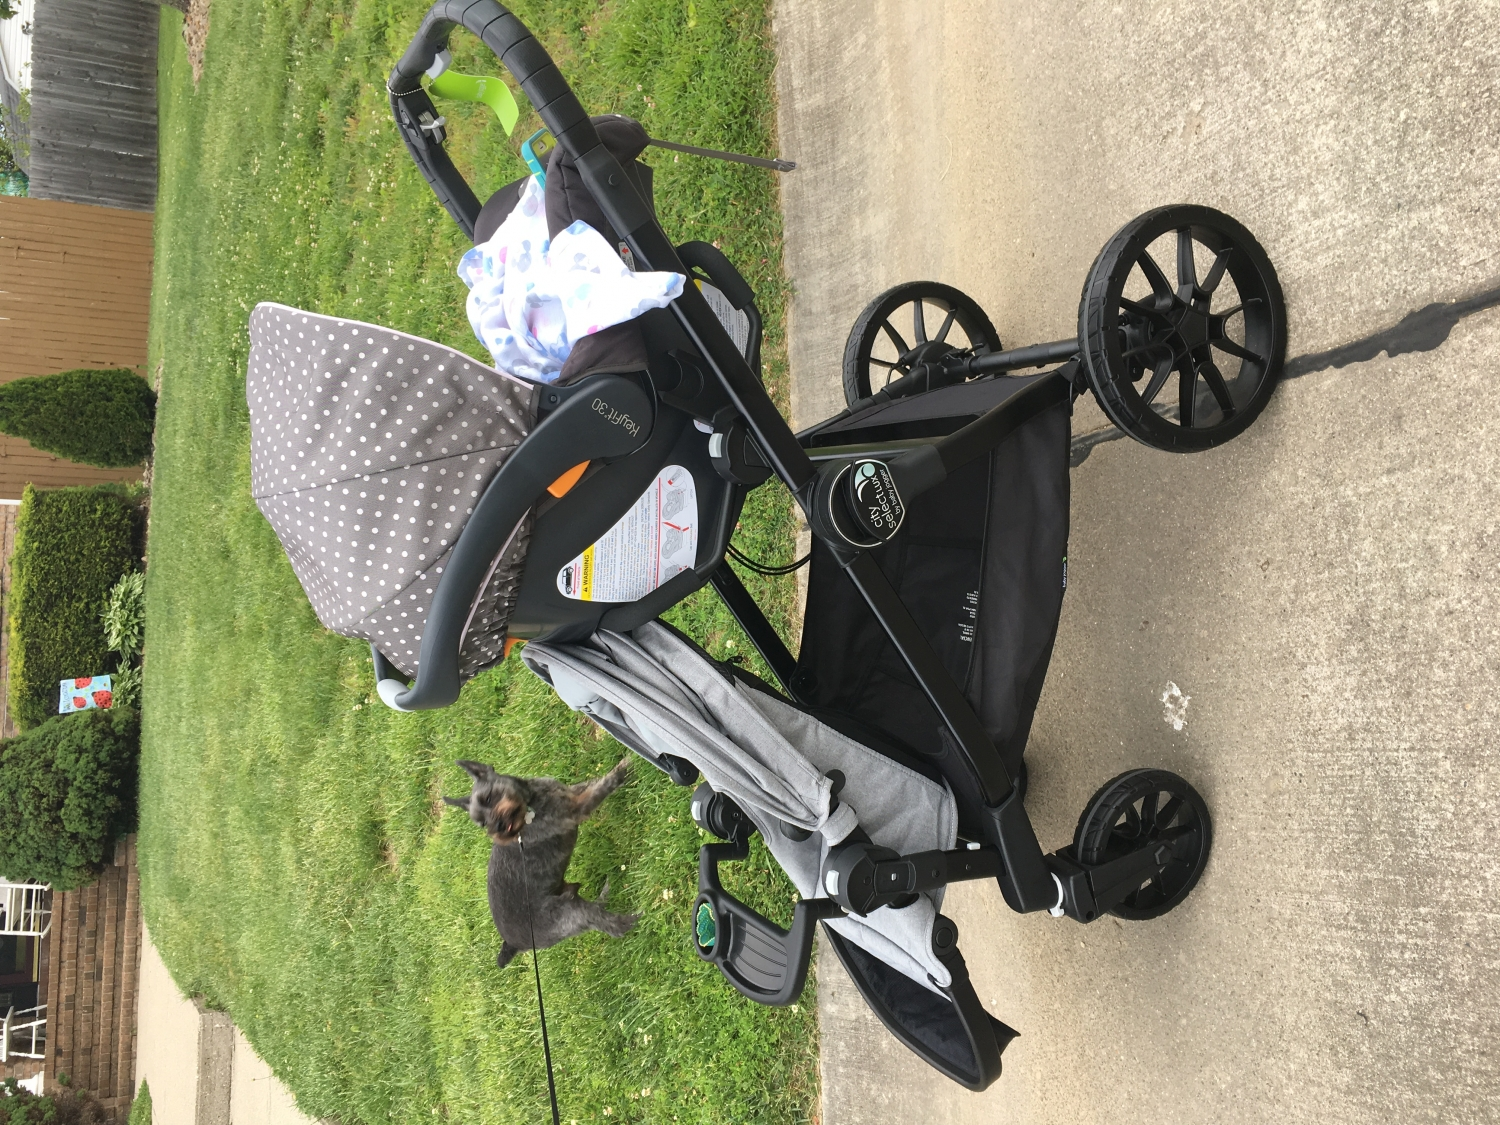 We Ordered This For Our Daughter To Use With Her New Stroller It Is Easy Attach The And Chico Car Seat Fits Just Right